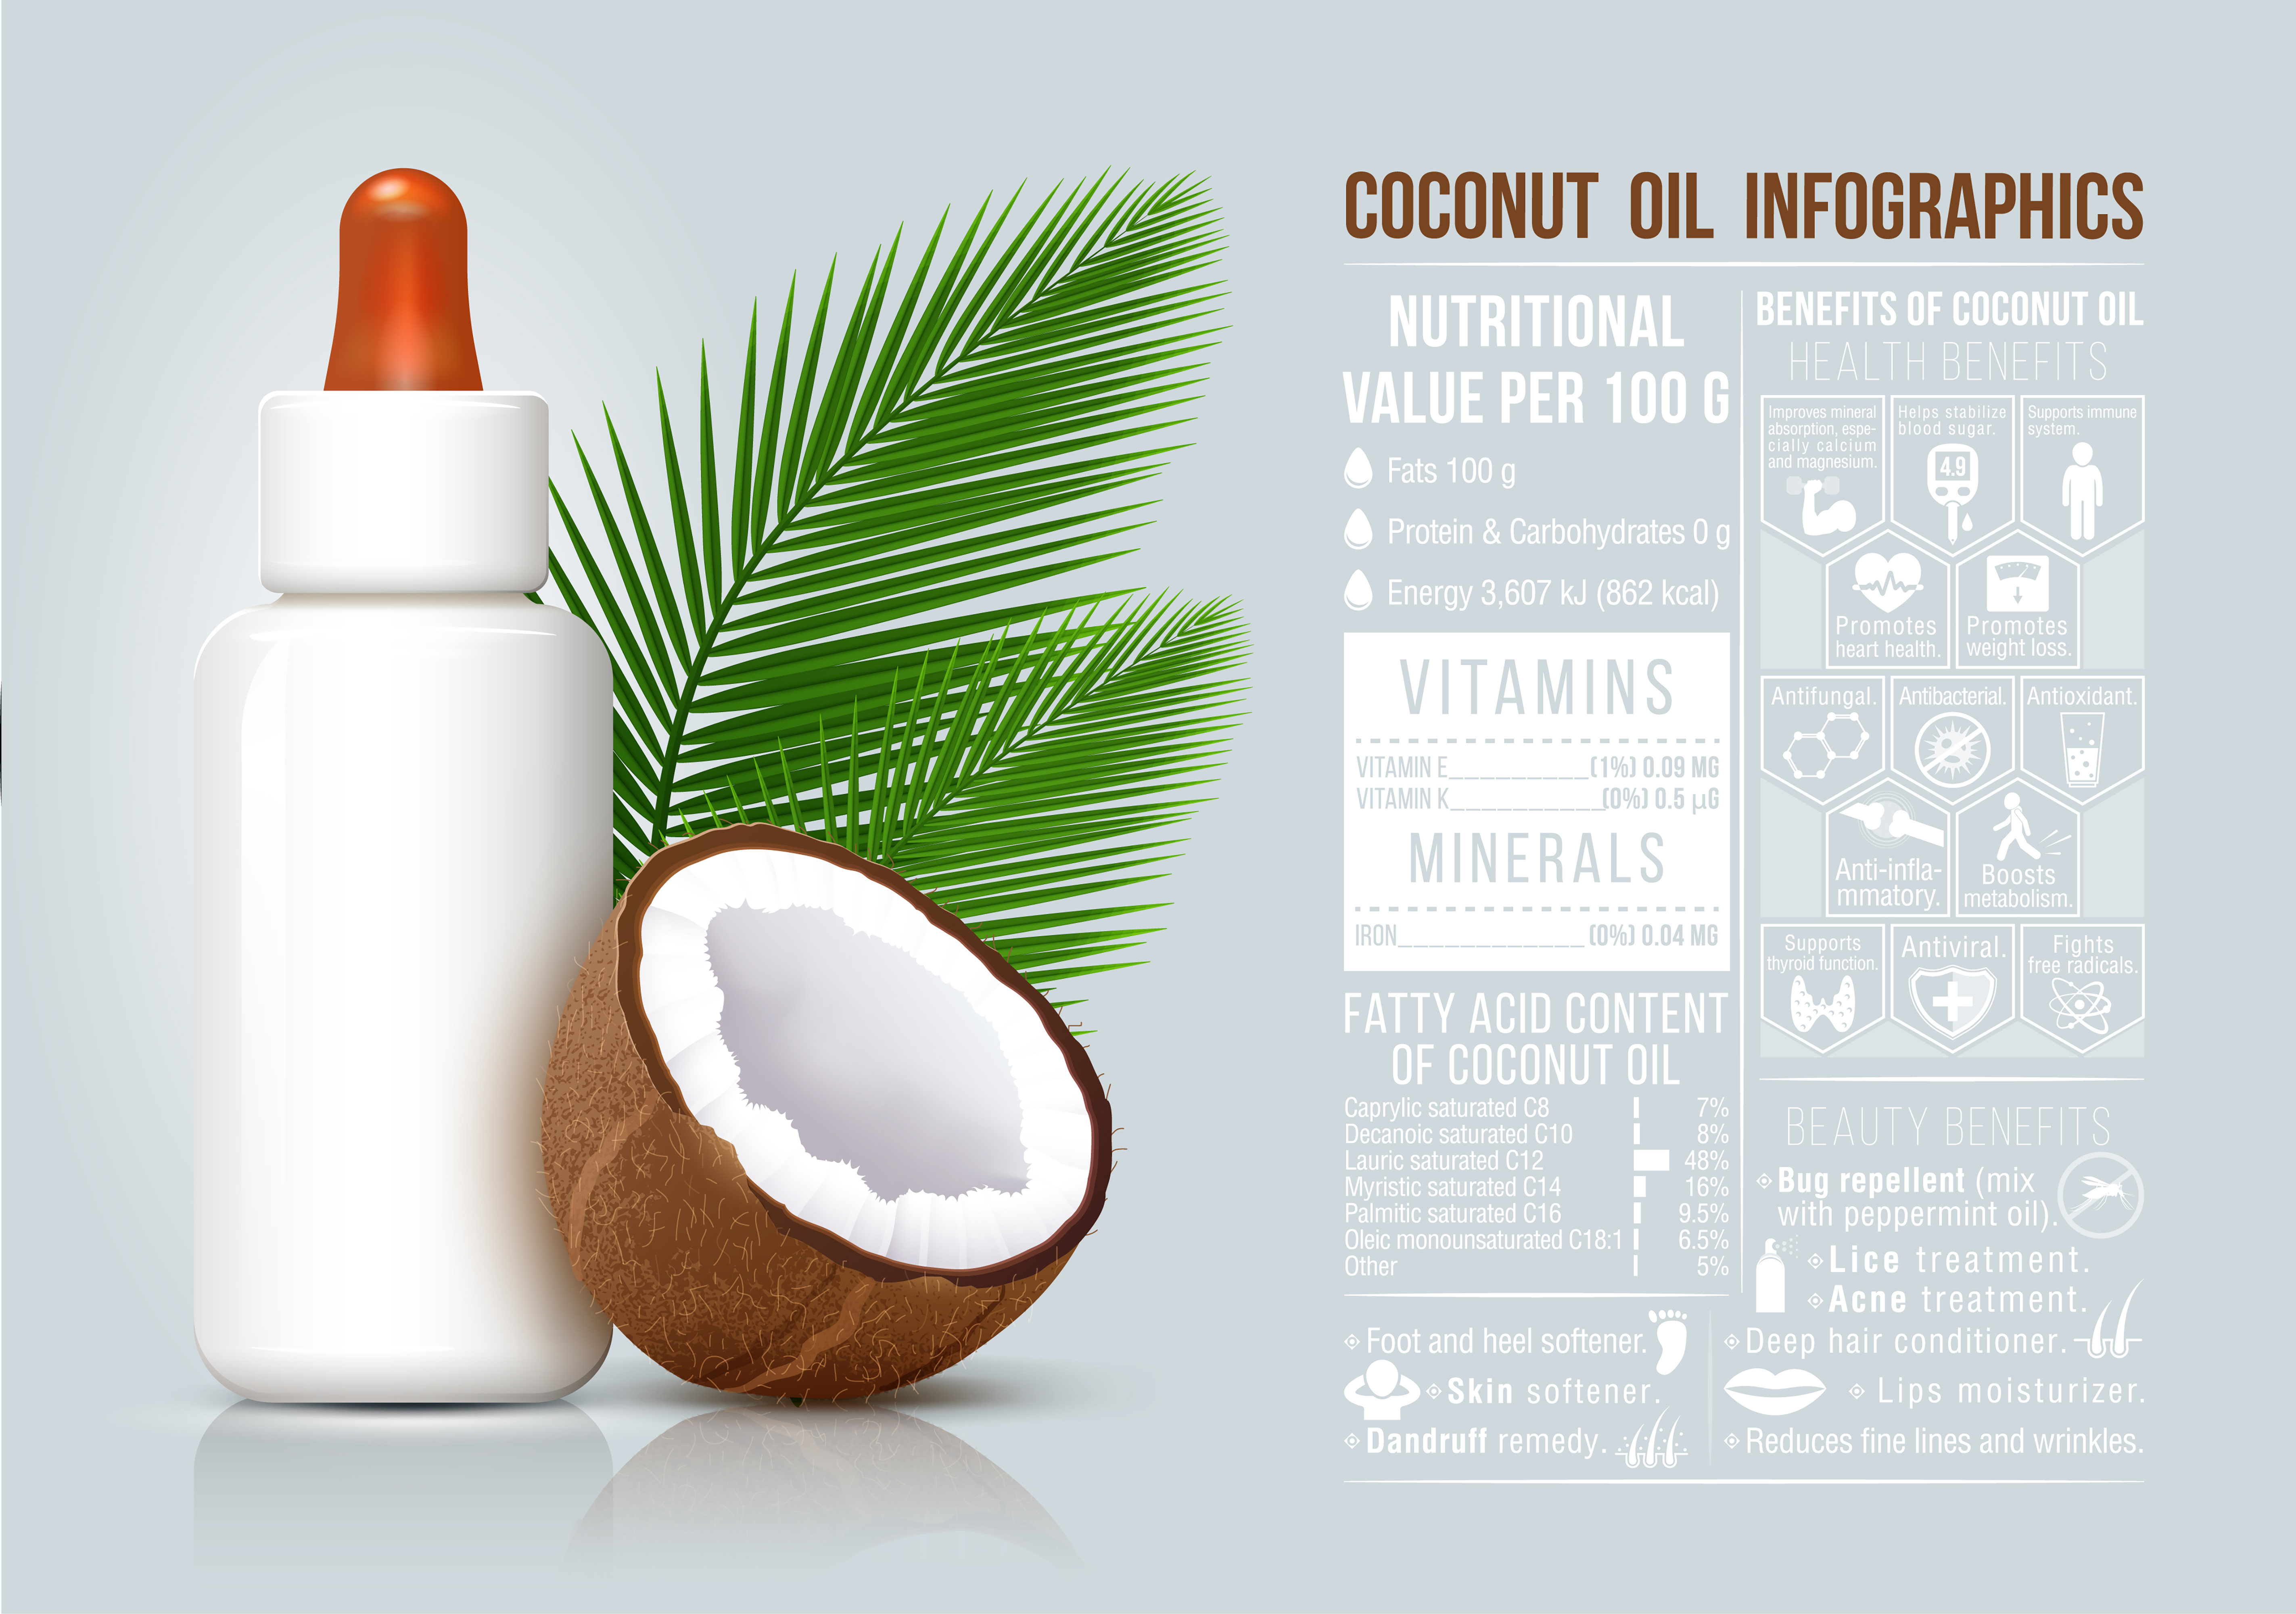 shutterstock 444708343 - 5 Proven Benefits of Coconut Oil for Burns